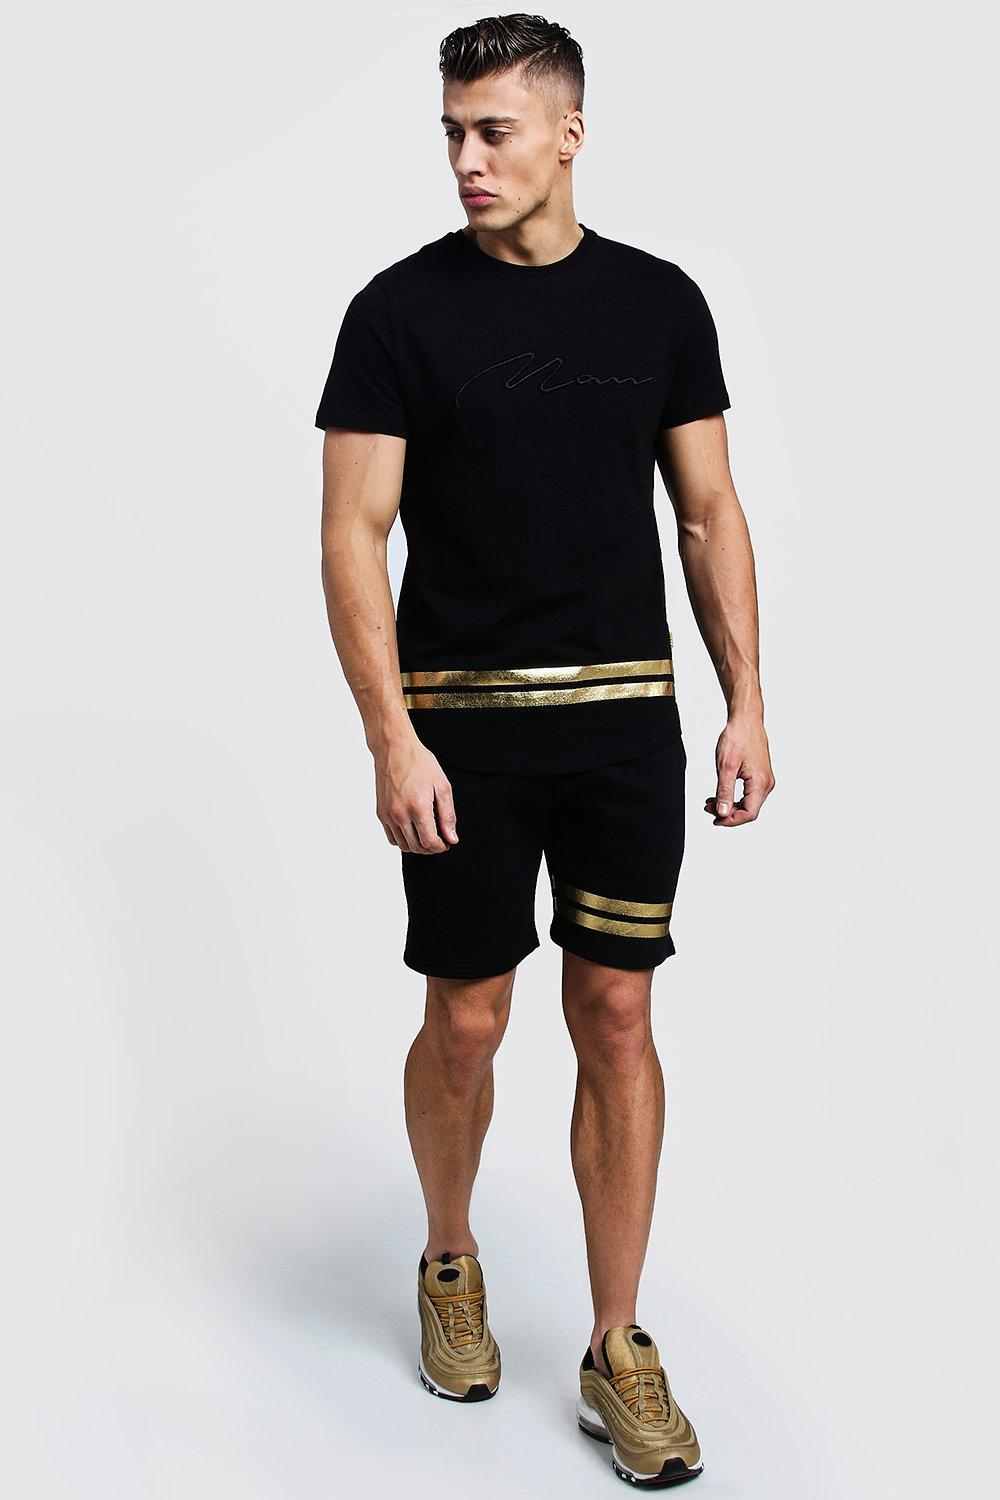 Men's Clothing Sale | Cheap Clothes For Men | boohoo UK